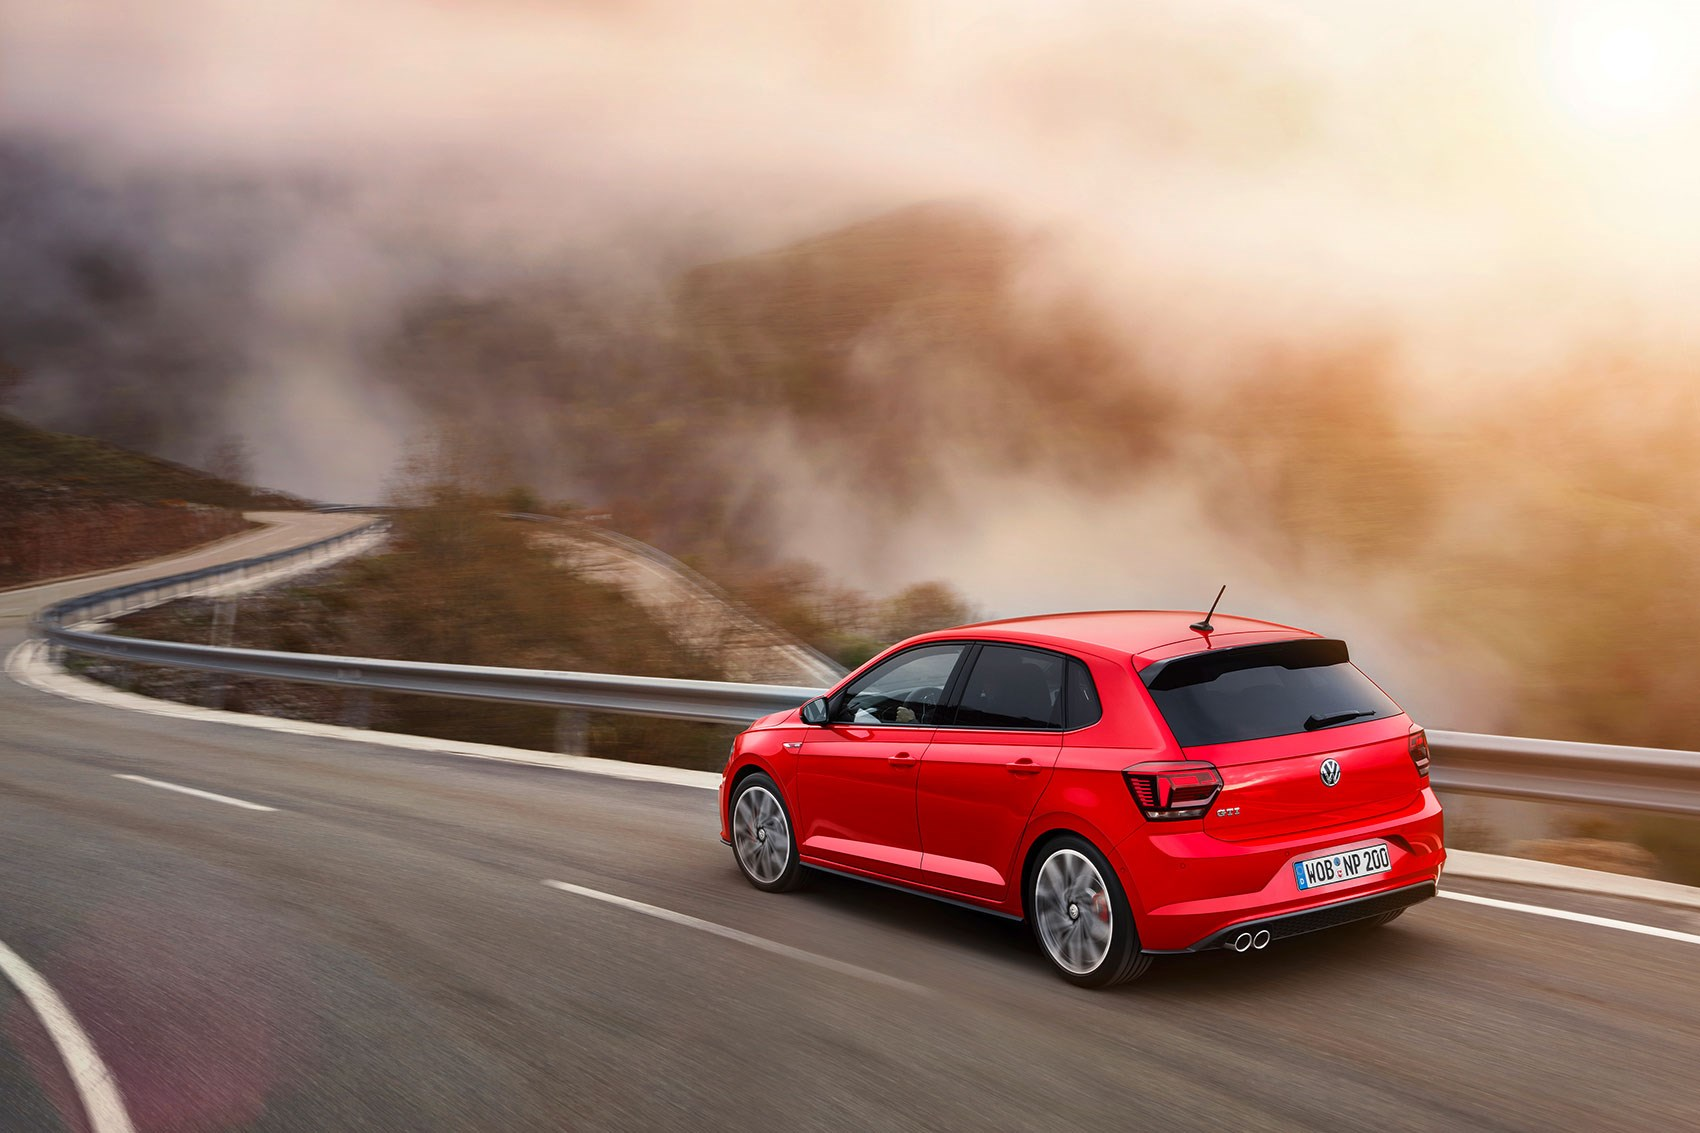 Vw Polo 2018 In Pictures Car Magazine